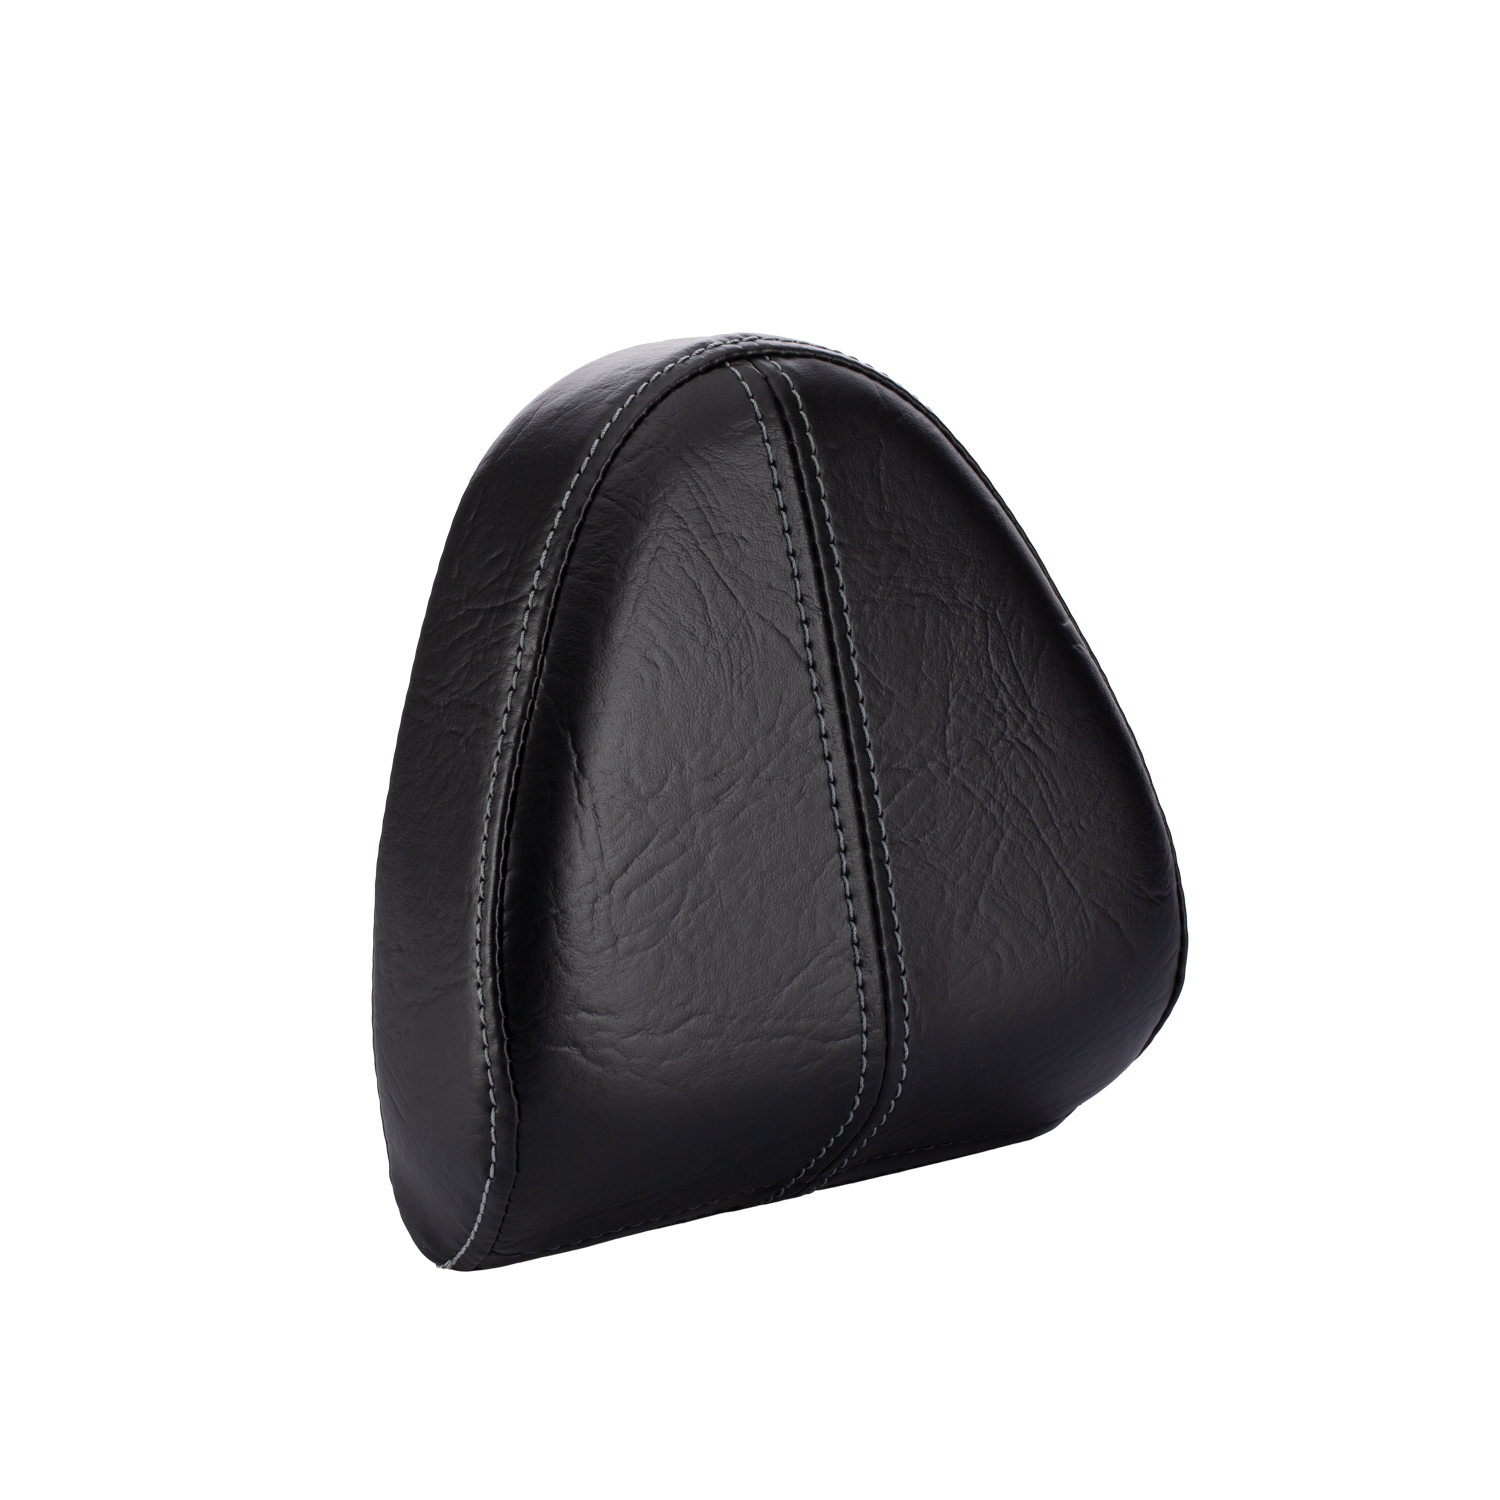 Backrest Pad - Black